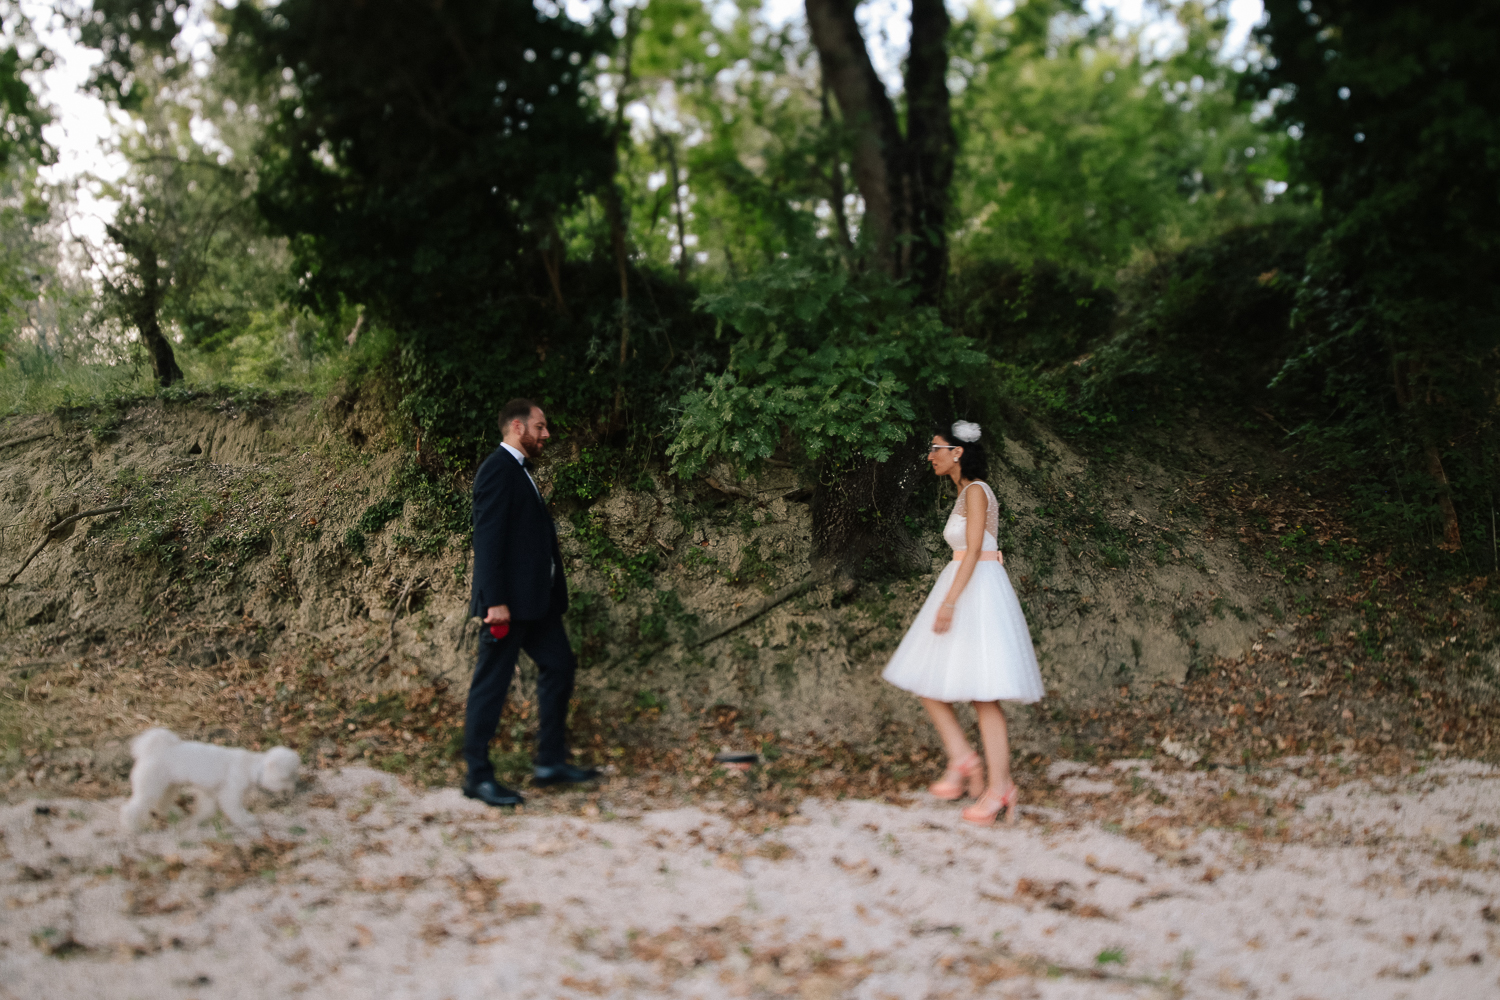 bride-groom-portrait-stop-motion-italy.jpg